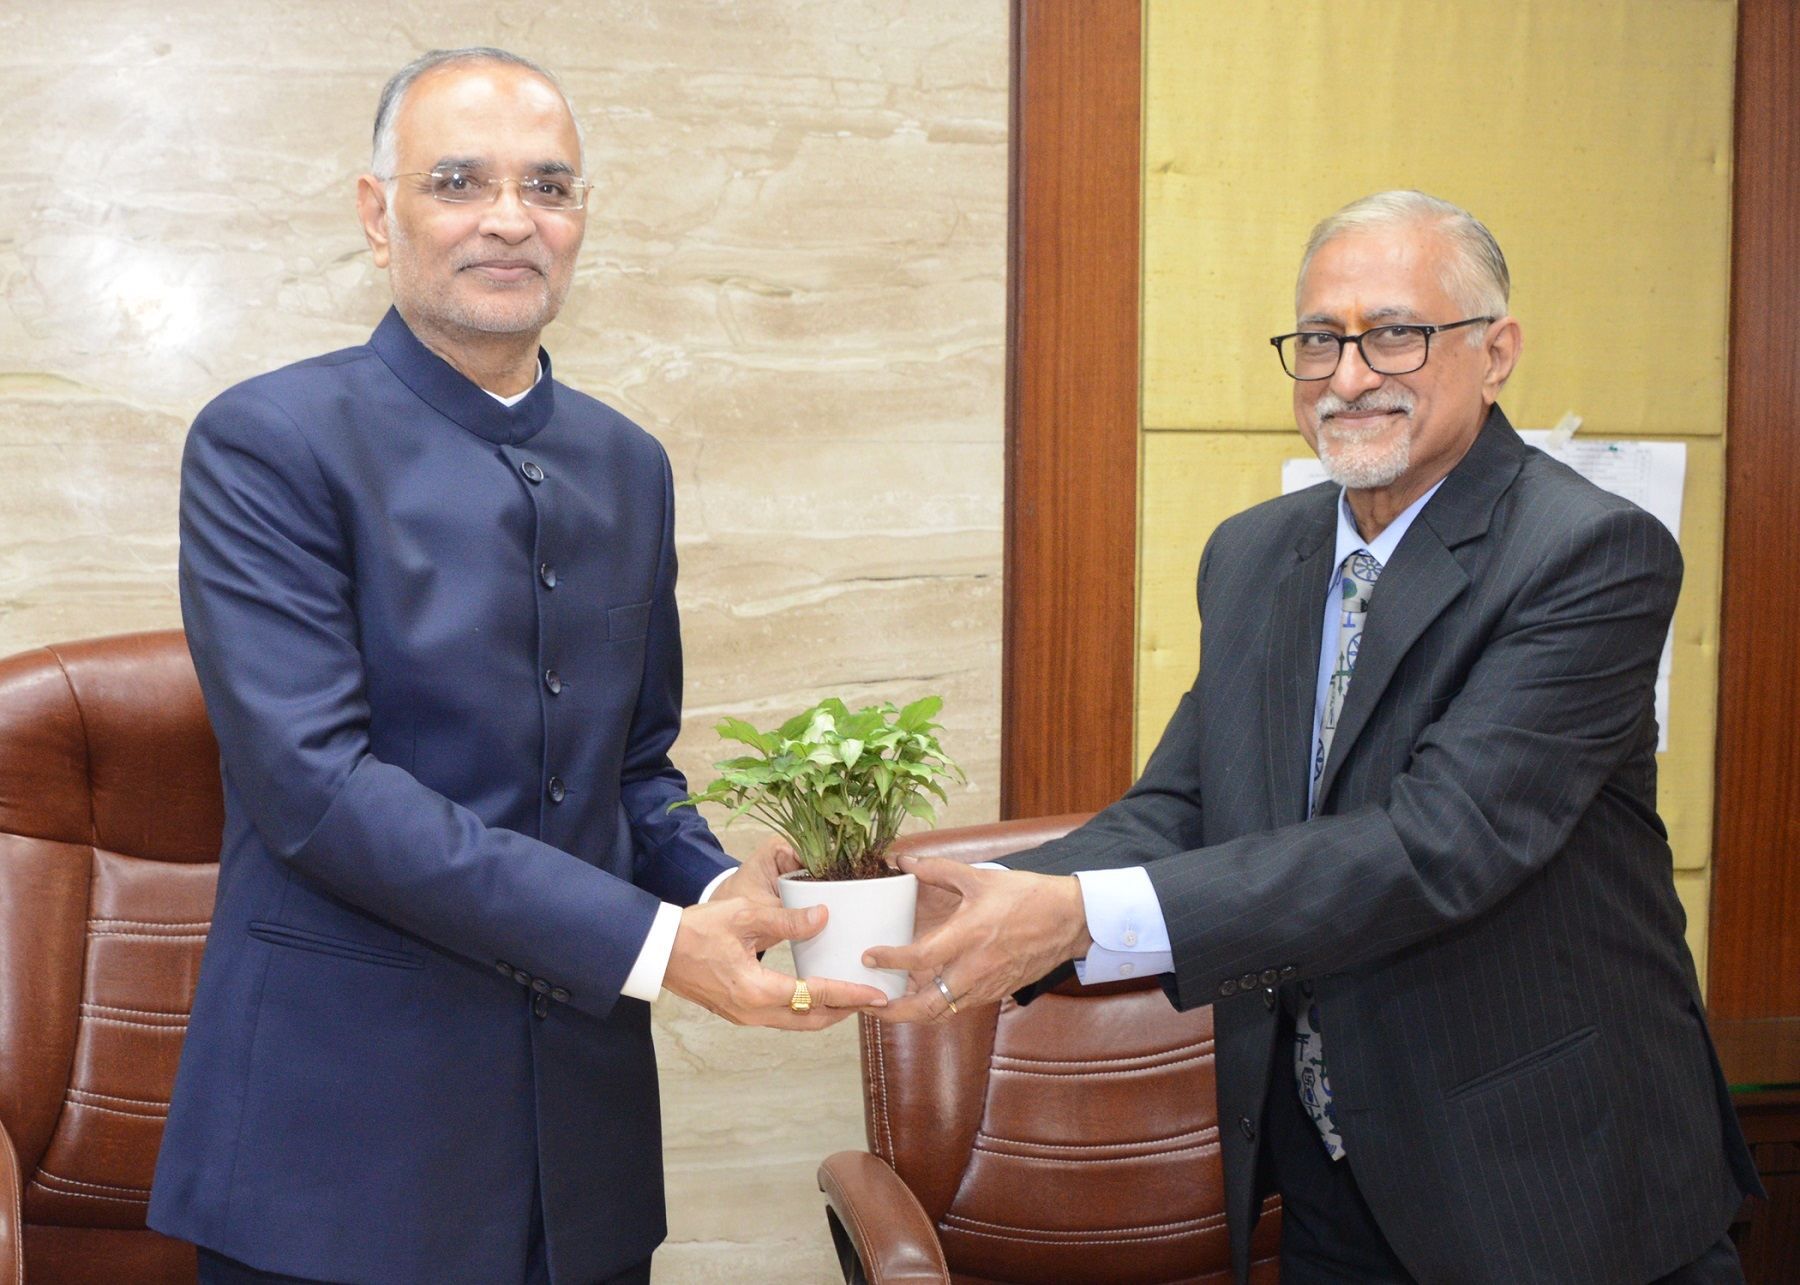 Visit of Hon'ble Chief Justice of Delhi High Court